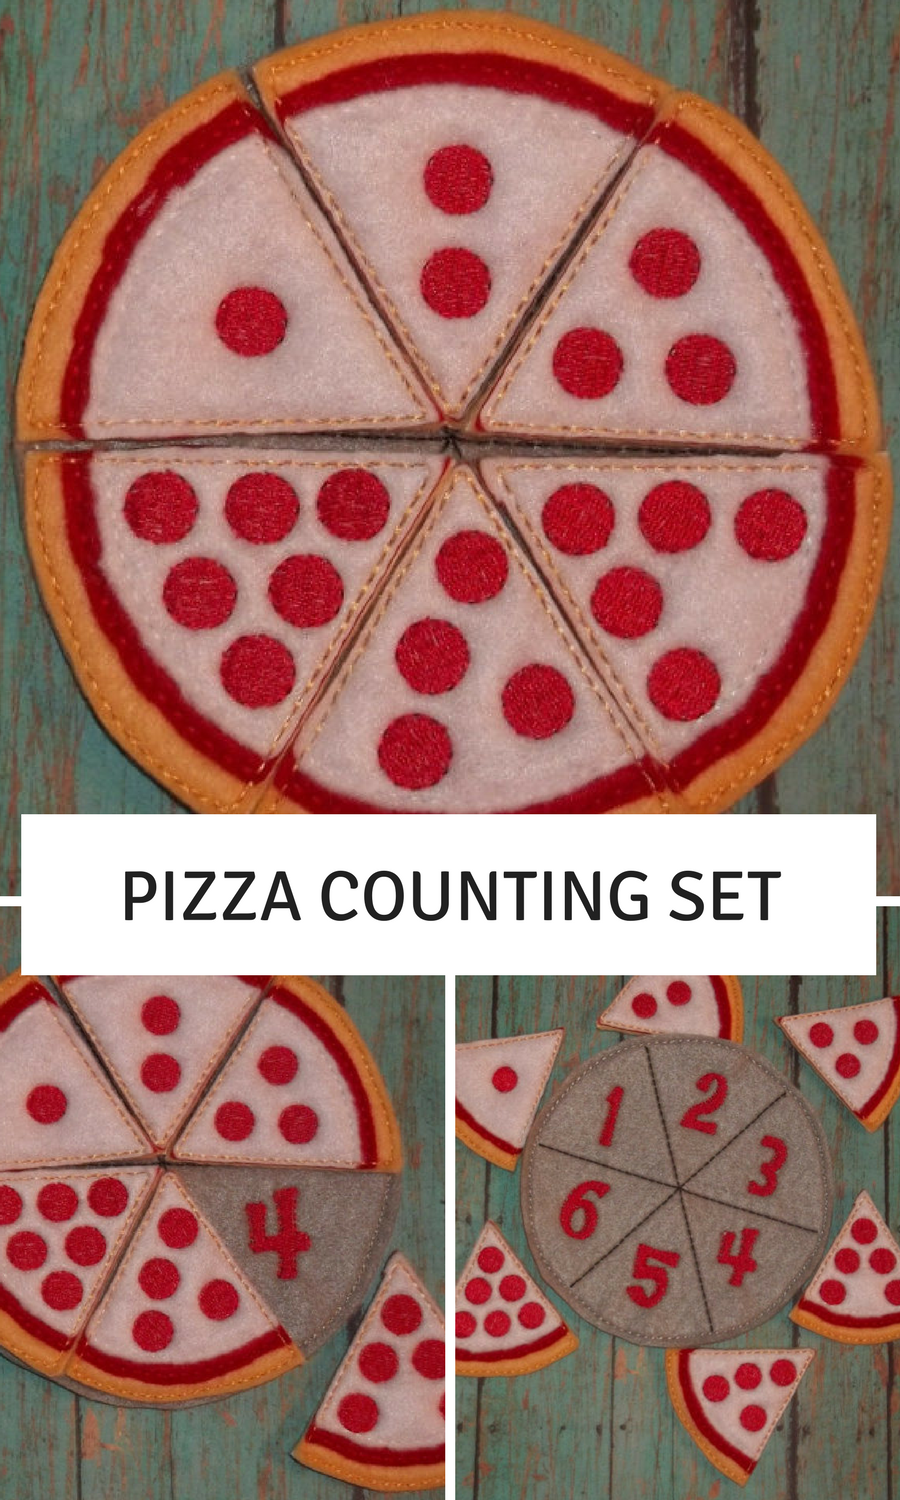 Pizza Counting Set learning toy great for Children, Kids